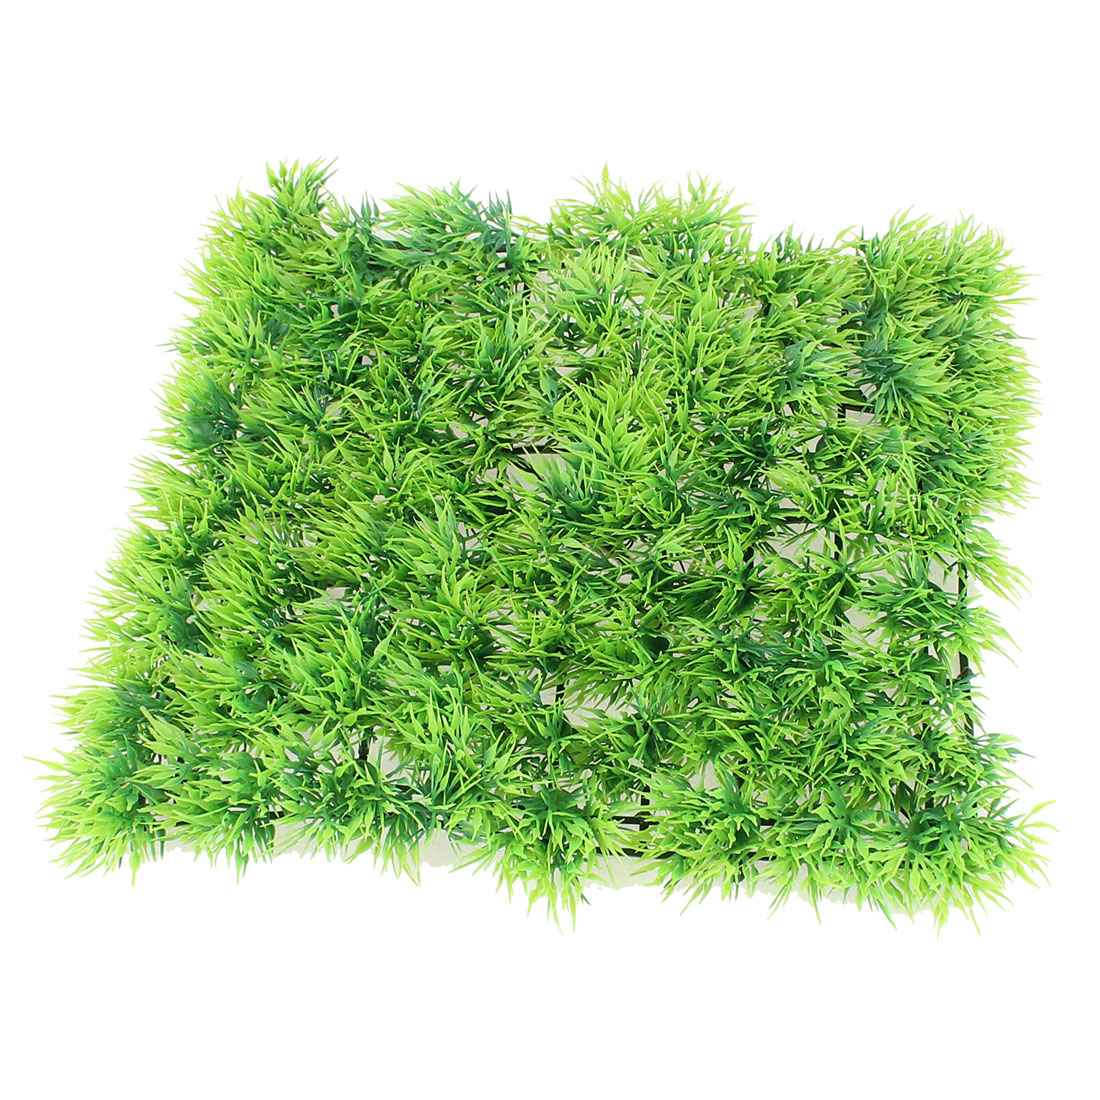 "Aquarium Ornament Green Plastic Grass Lawn Mat Turf Decoration 10"" x 10"" x 1.2"""